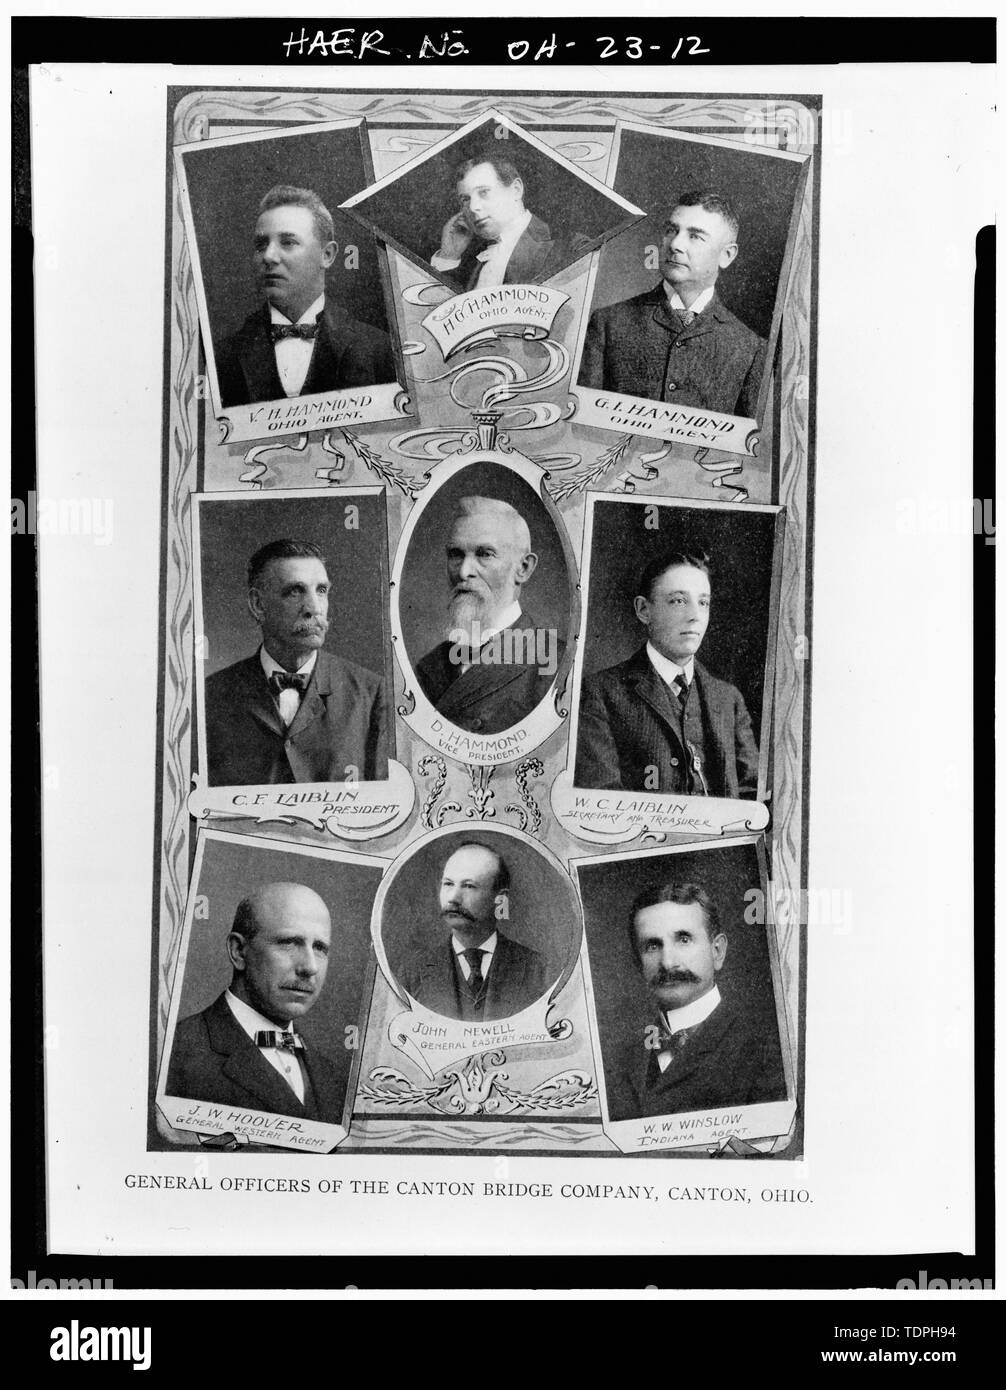 1902 GENERAL OFFICERS OF CANTON BRIDGE COMPANY (Courtesy of the Ramsayer Library, Stark County Historical Society) - Third Street Southeast Bridge, Spanning Nimishillen Creek, Canton, Stark County, OH Stock Photo